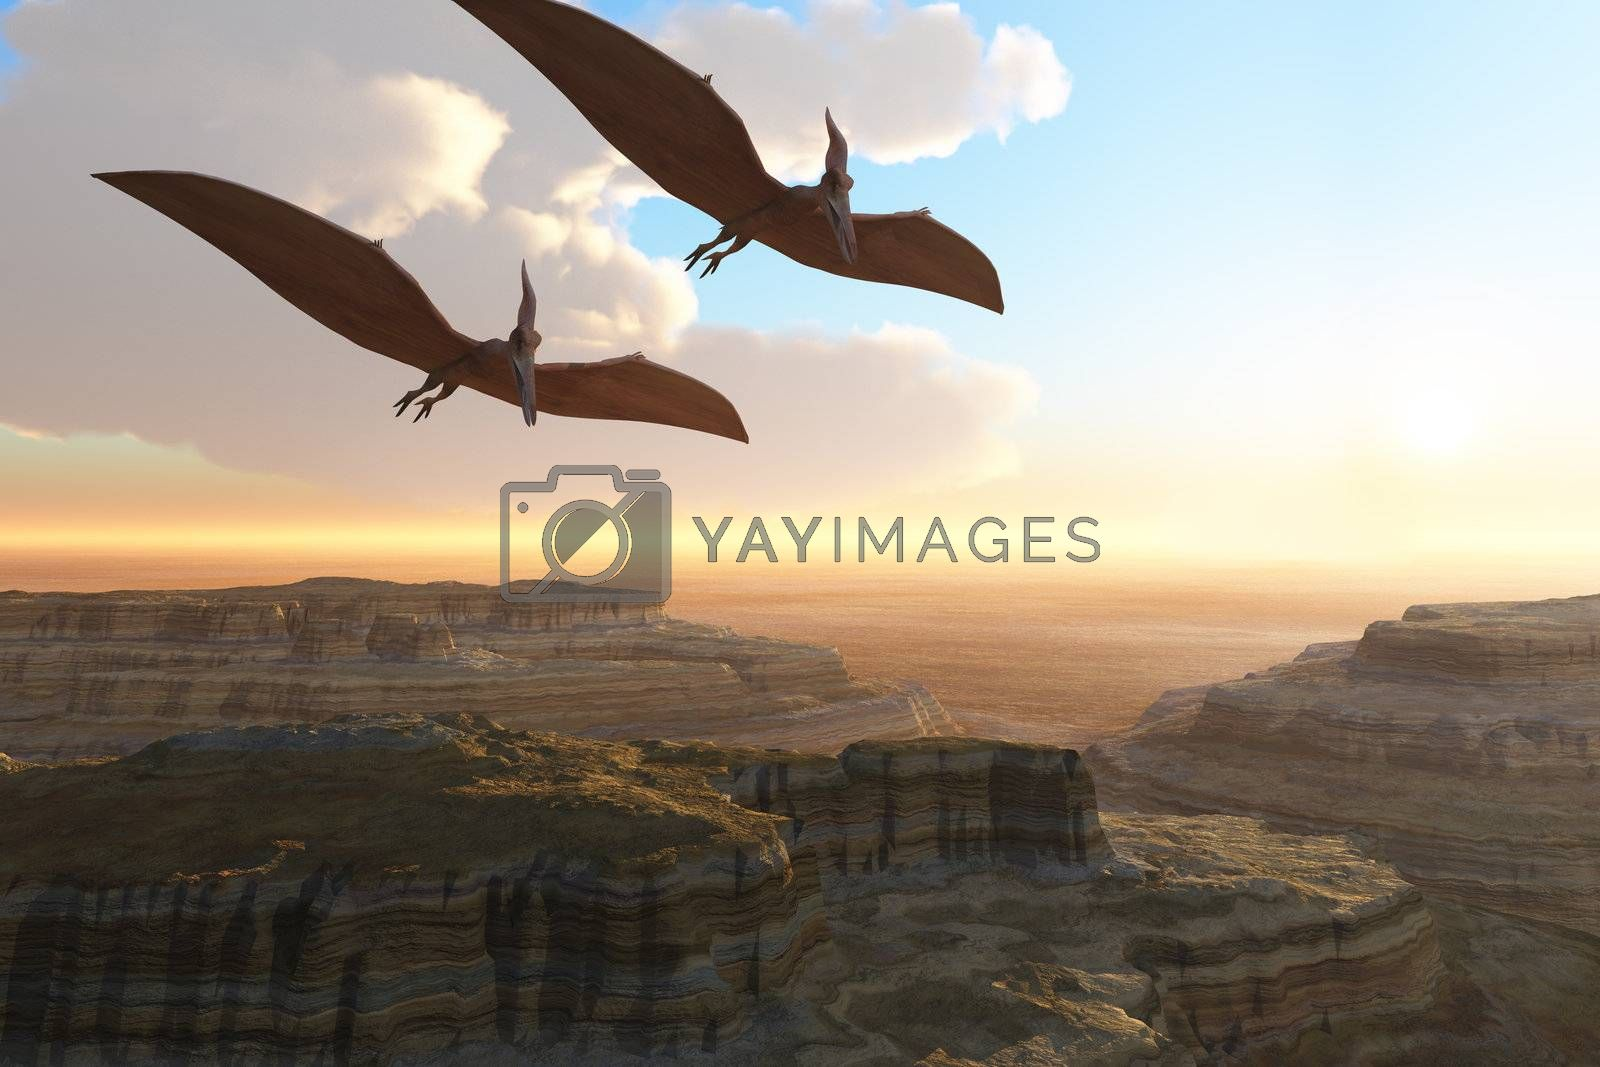 Two Pterodactyl flying dinosaurs soar above a beautiful canyon.